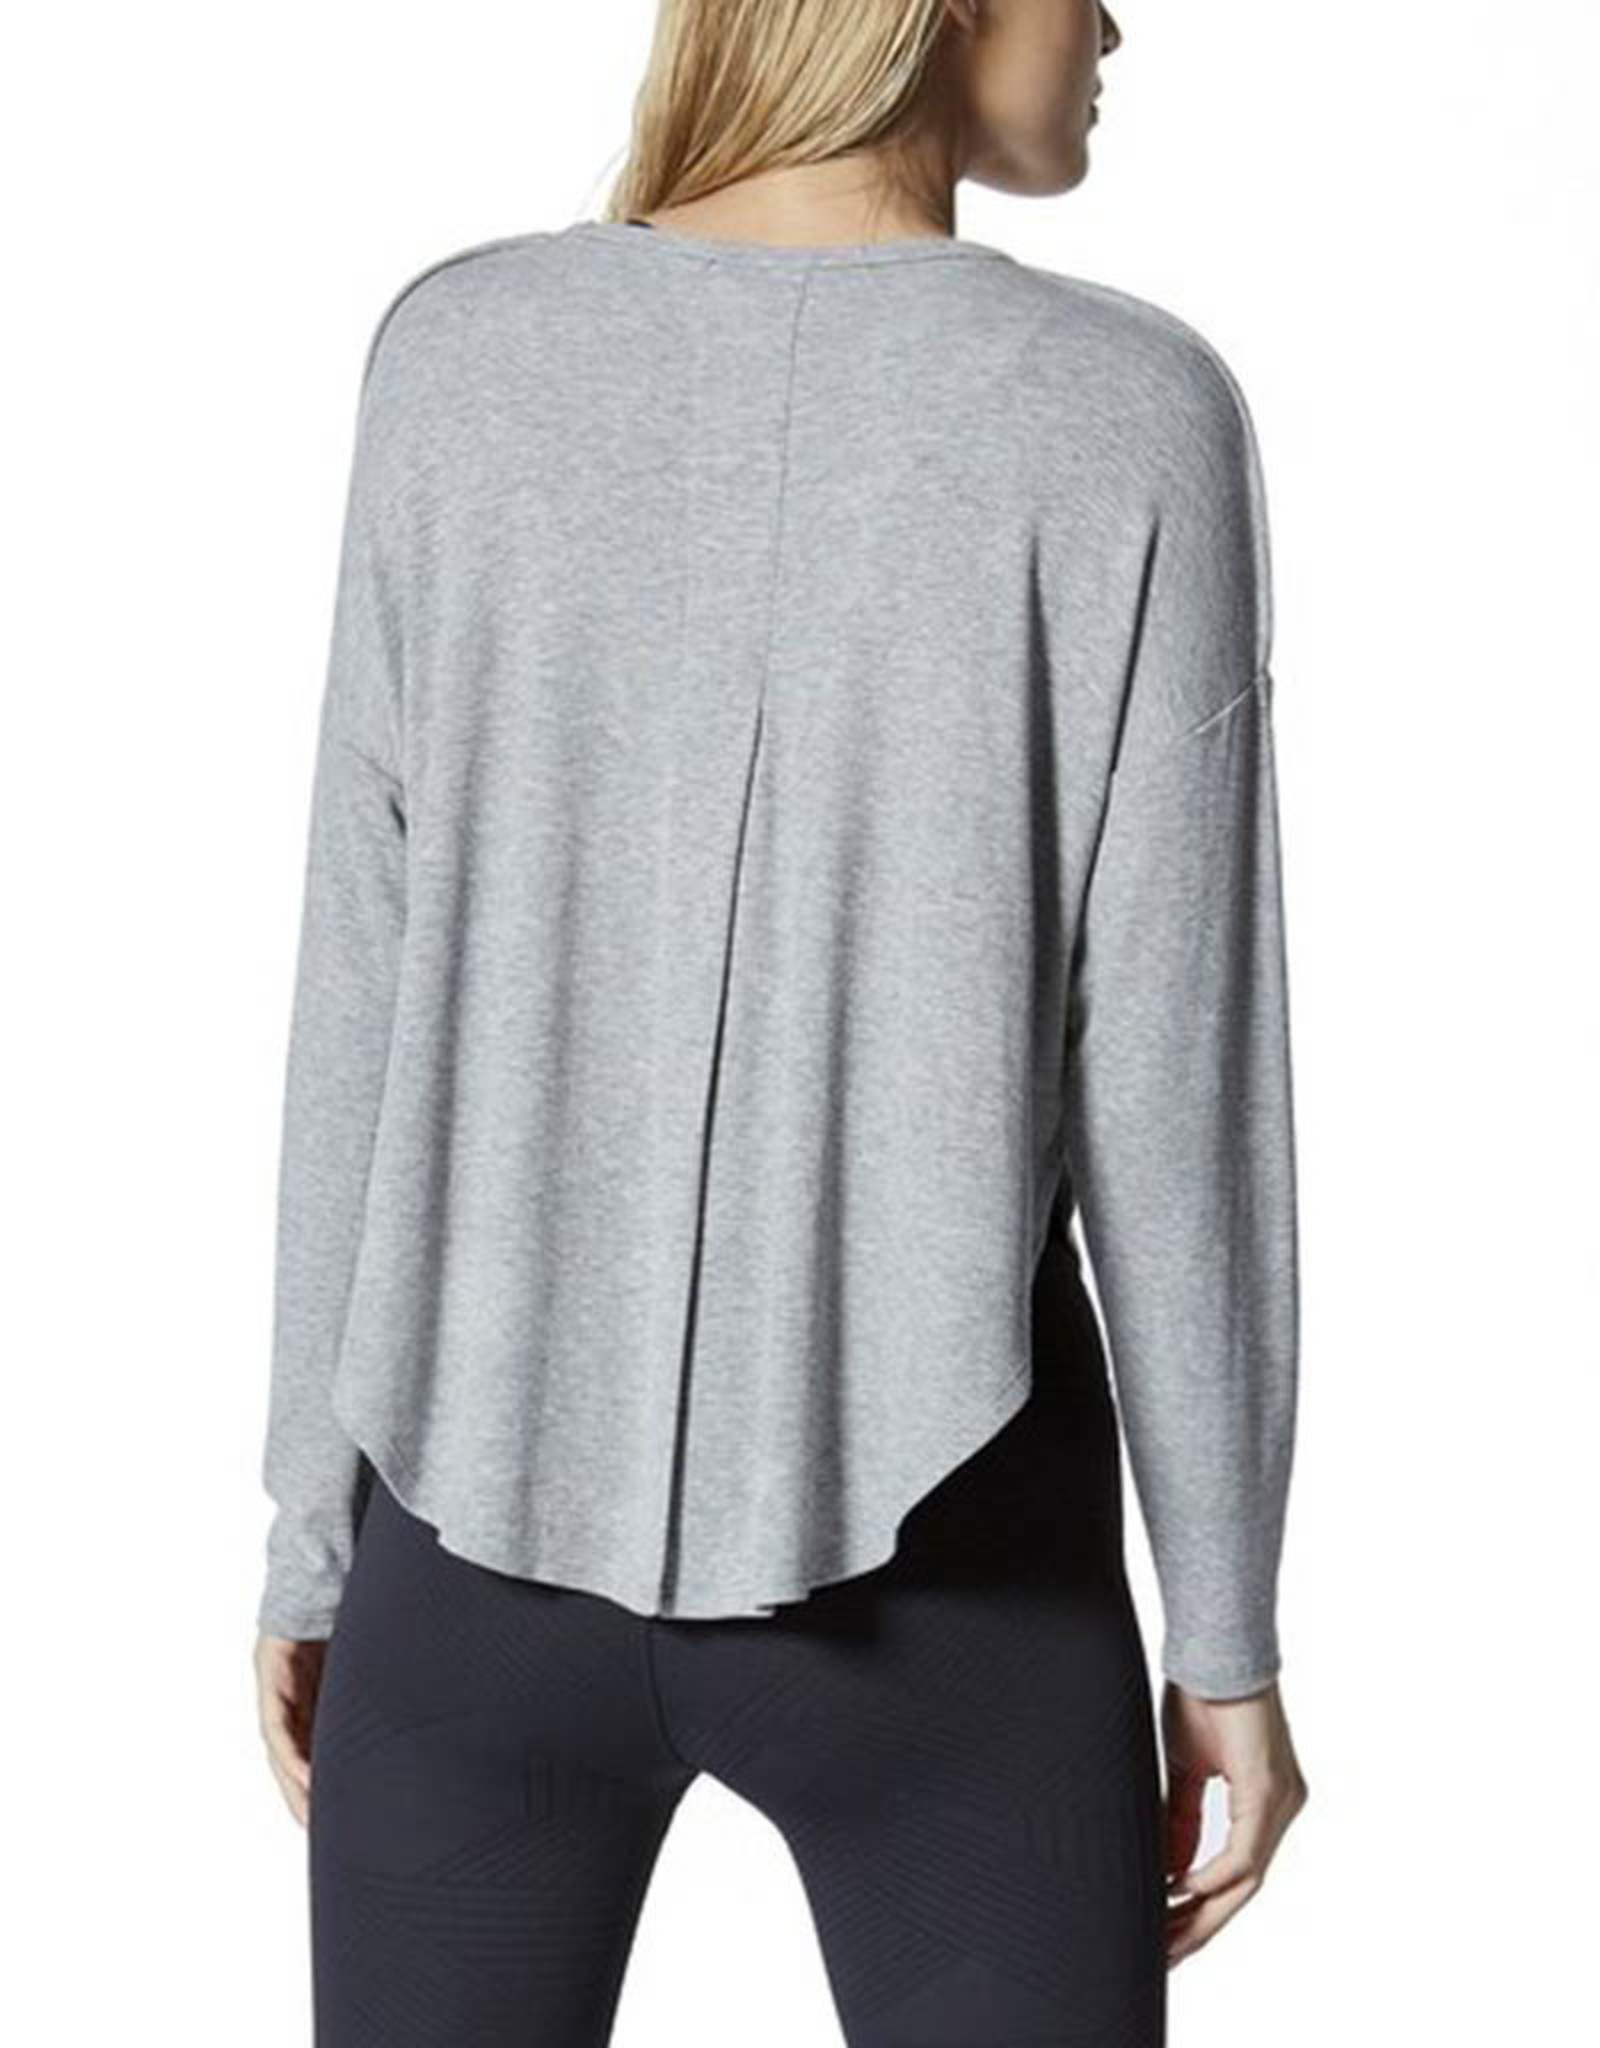 VIMMIA SERENITY LONG SLEEVE SPLIT BACK TOP